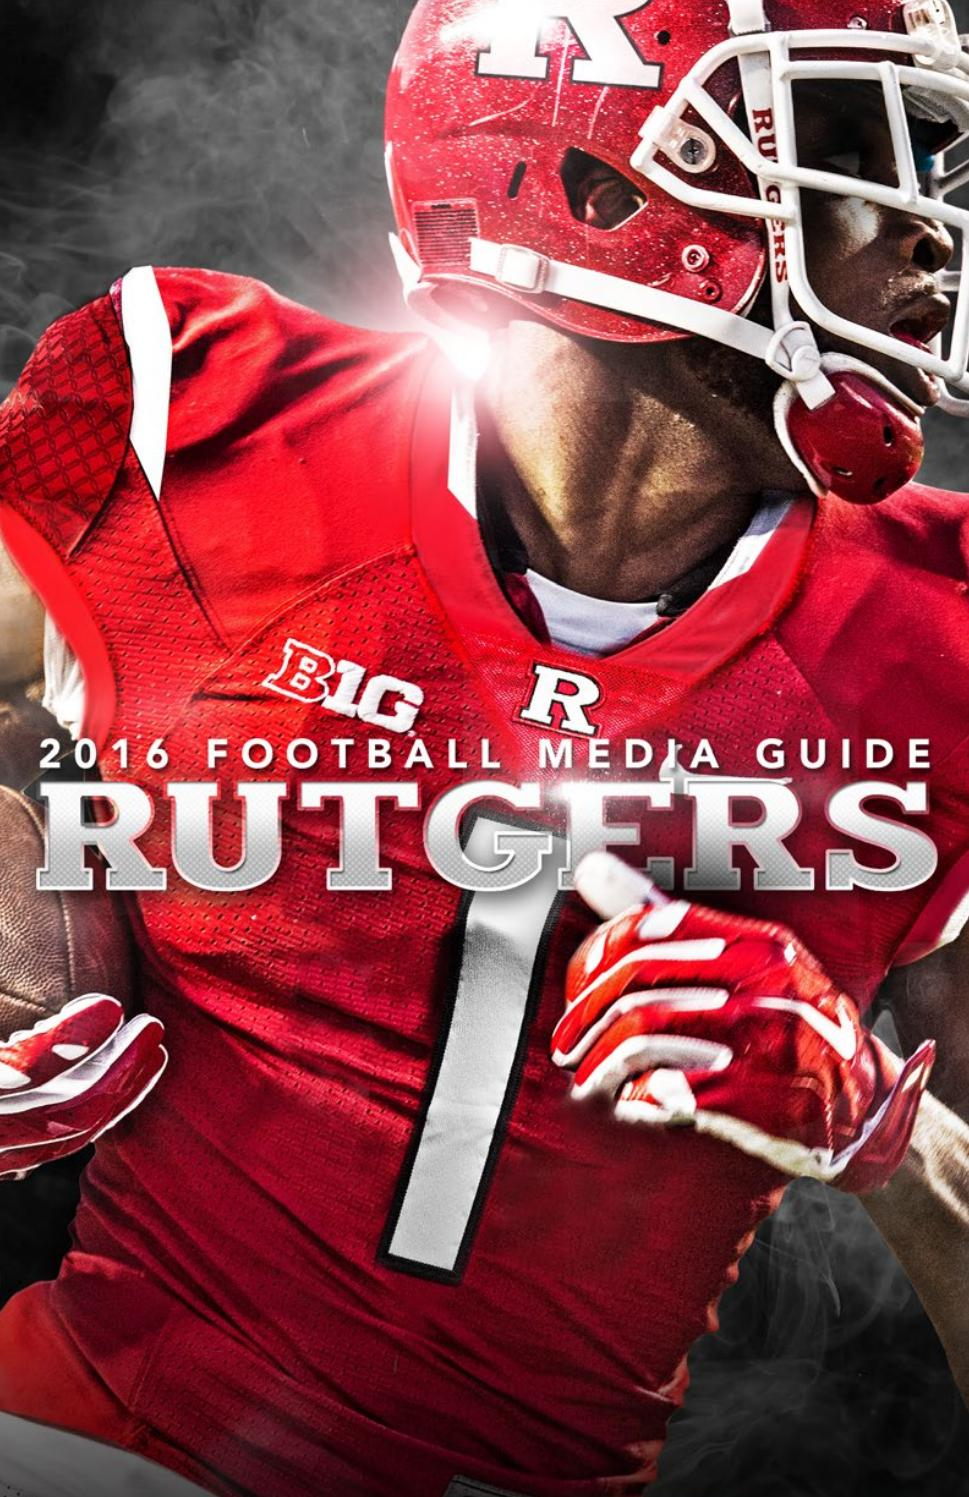 975381c5de6 2016 Rutgers Football Media Guide by Rutgers Athletics - issuu